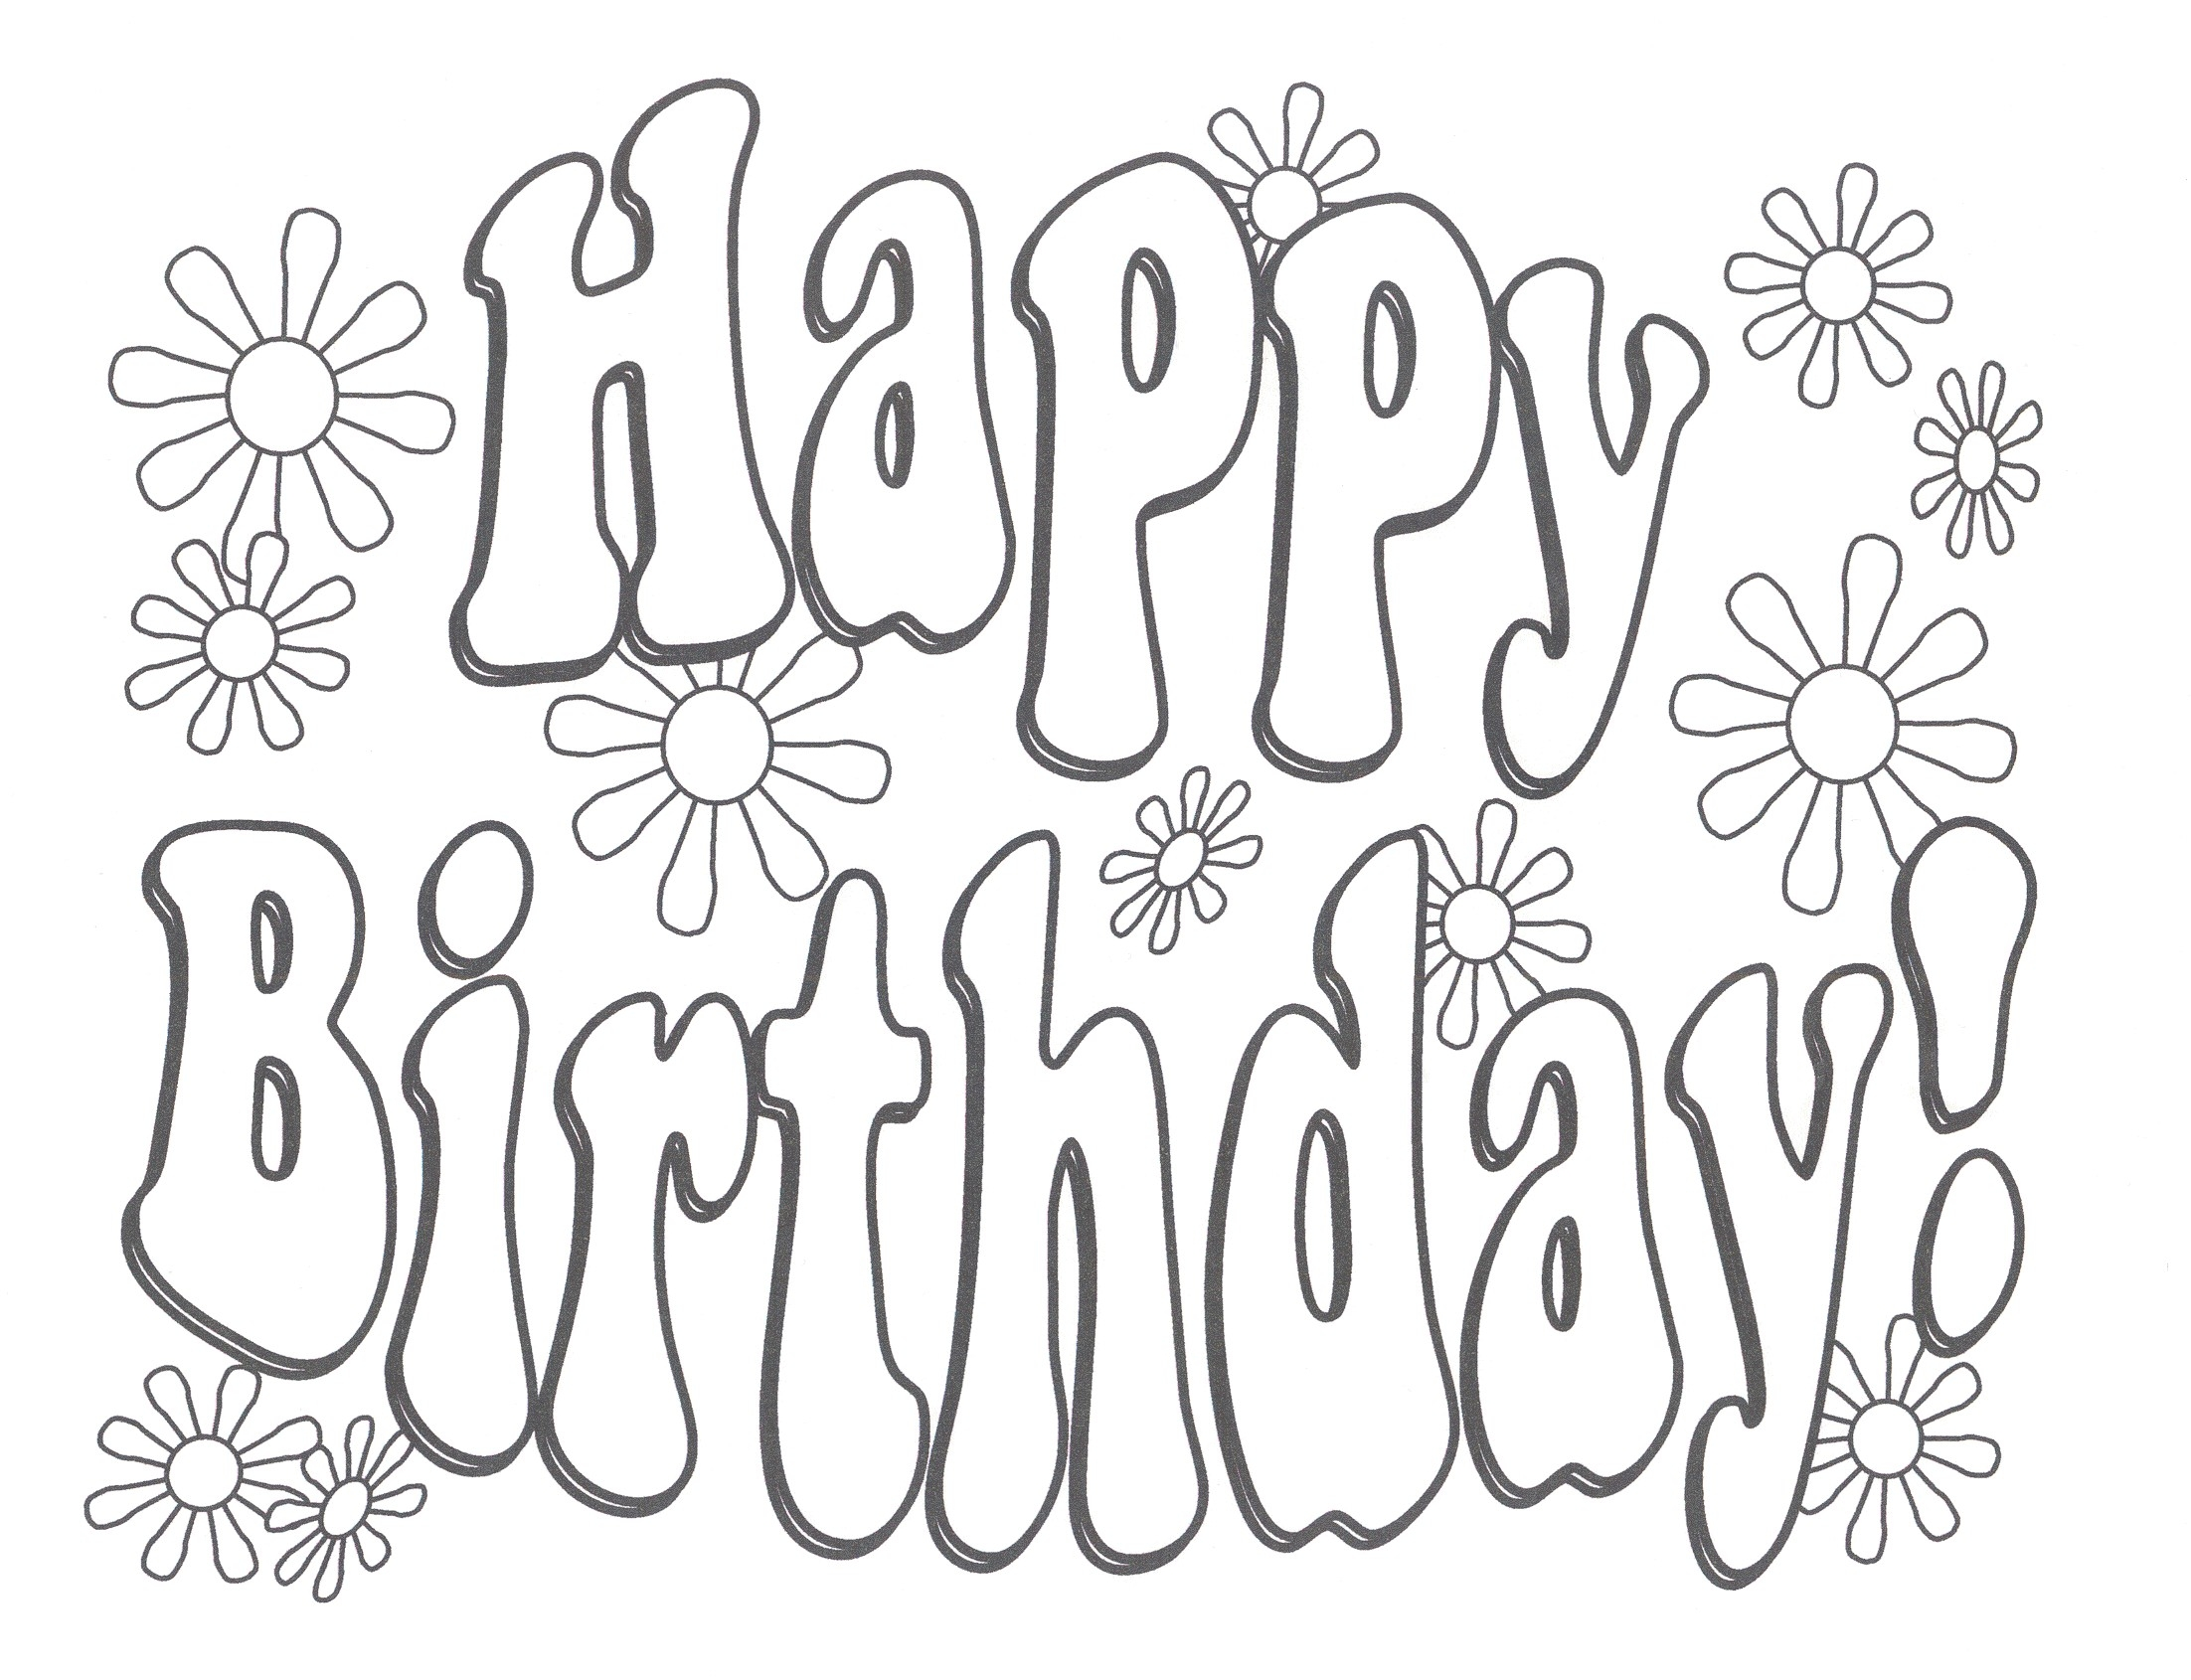 happy birthday mom coloring page ; coloring-pages-for-moms-and-dads-fresh-happy-birthday-color-pages-printable-of-happy-birthday-mom-coloring-pages